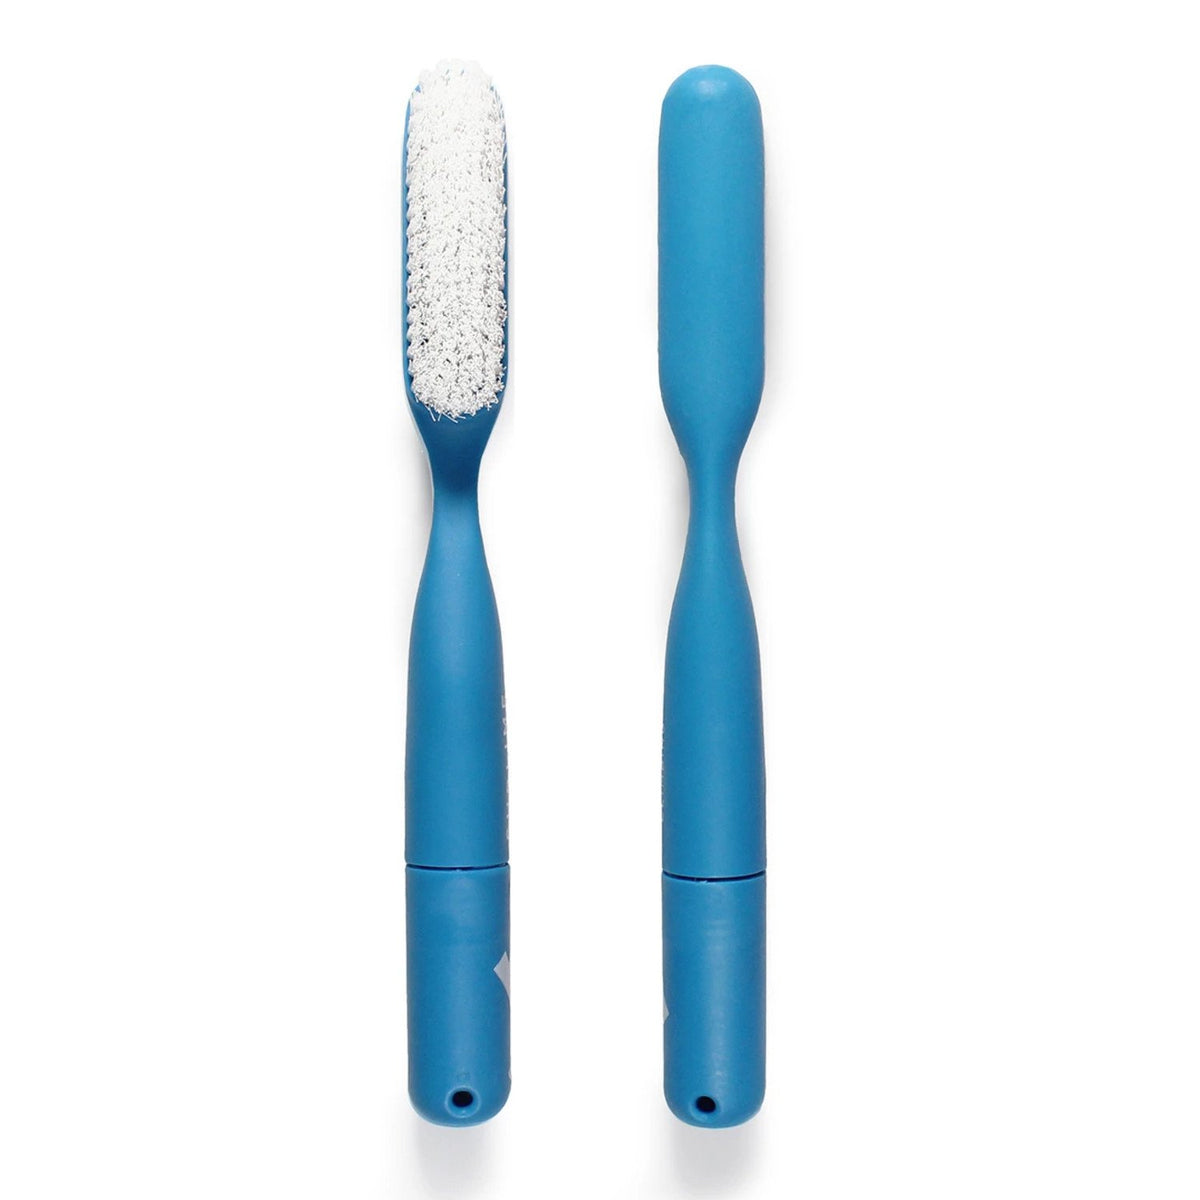 Sublime Climbing Nylon Brush, Front and back view with a blue handle and white bristles